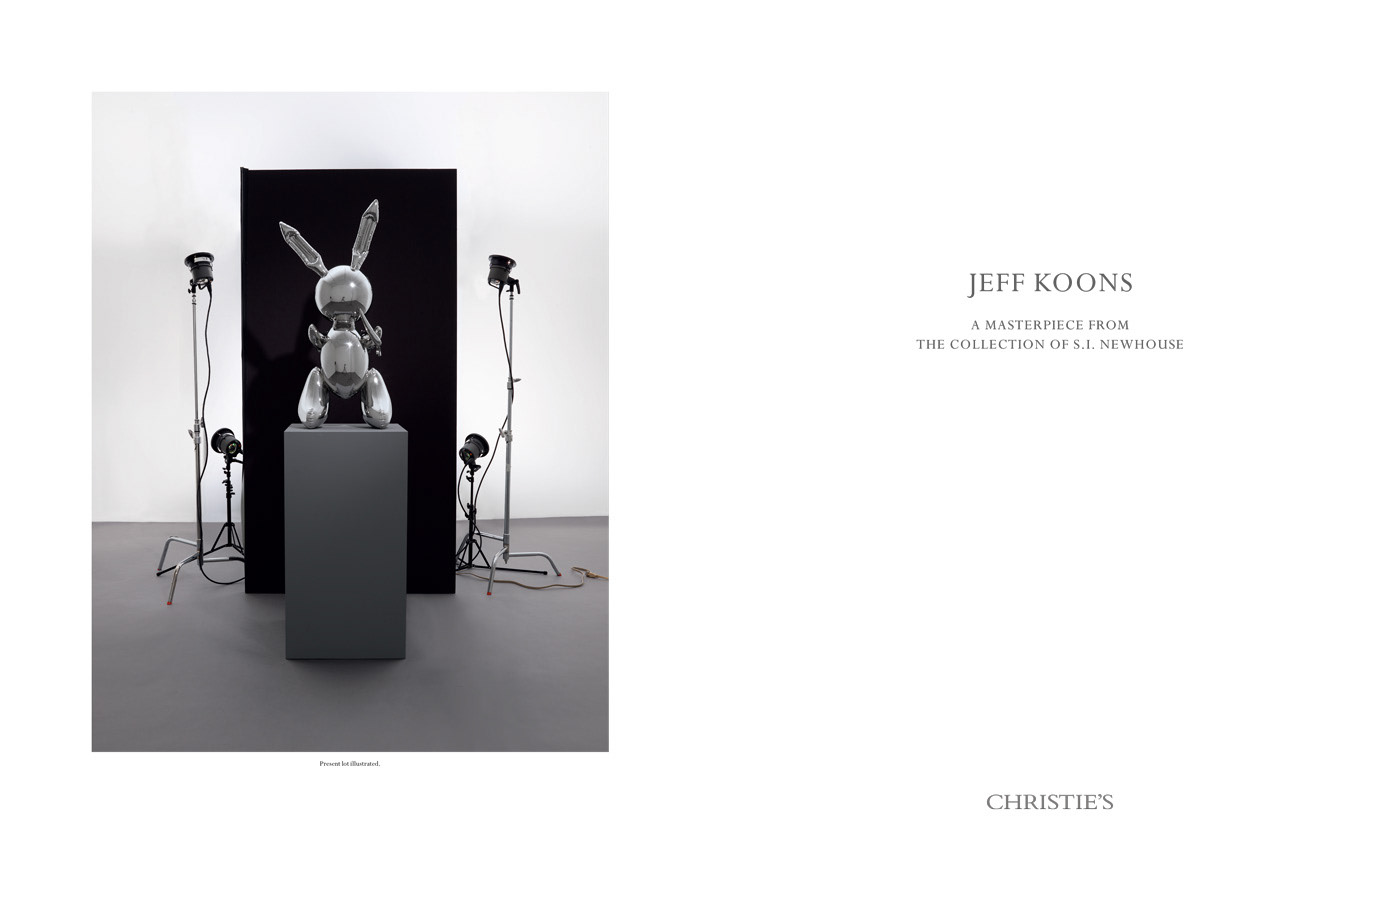 auction book Catalogue fine art koons luxury reflection stainless steel art christie's